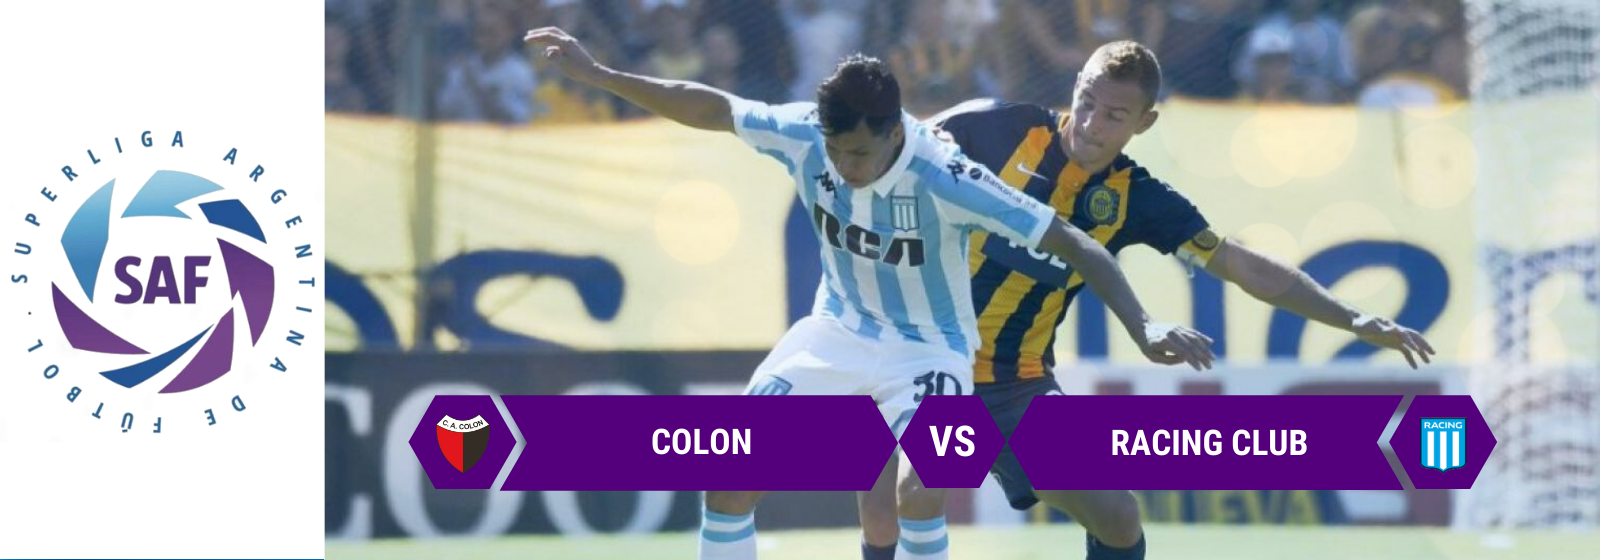 Asianconnect: Colon vs Racing Odds for February 14, 2020